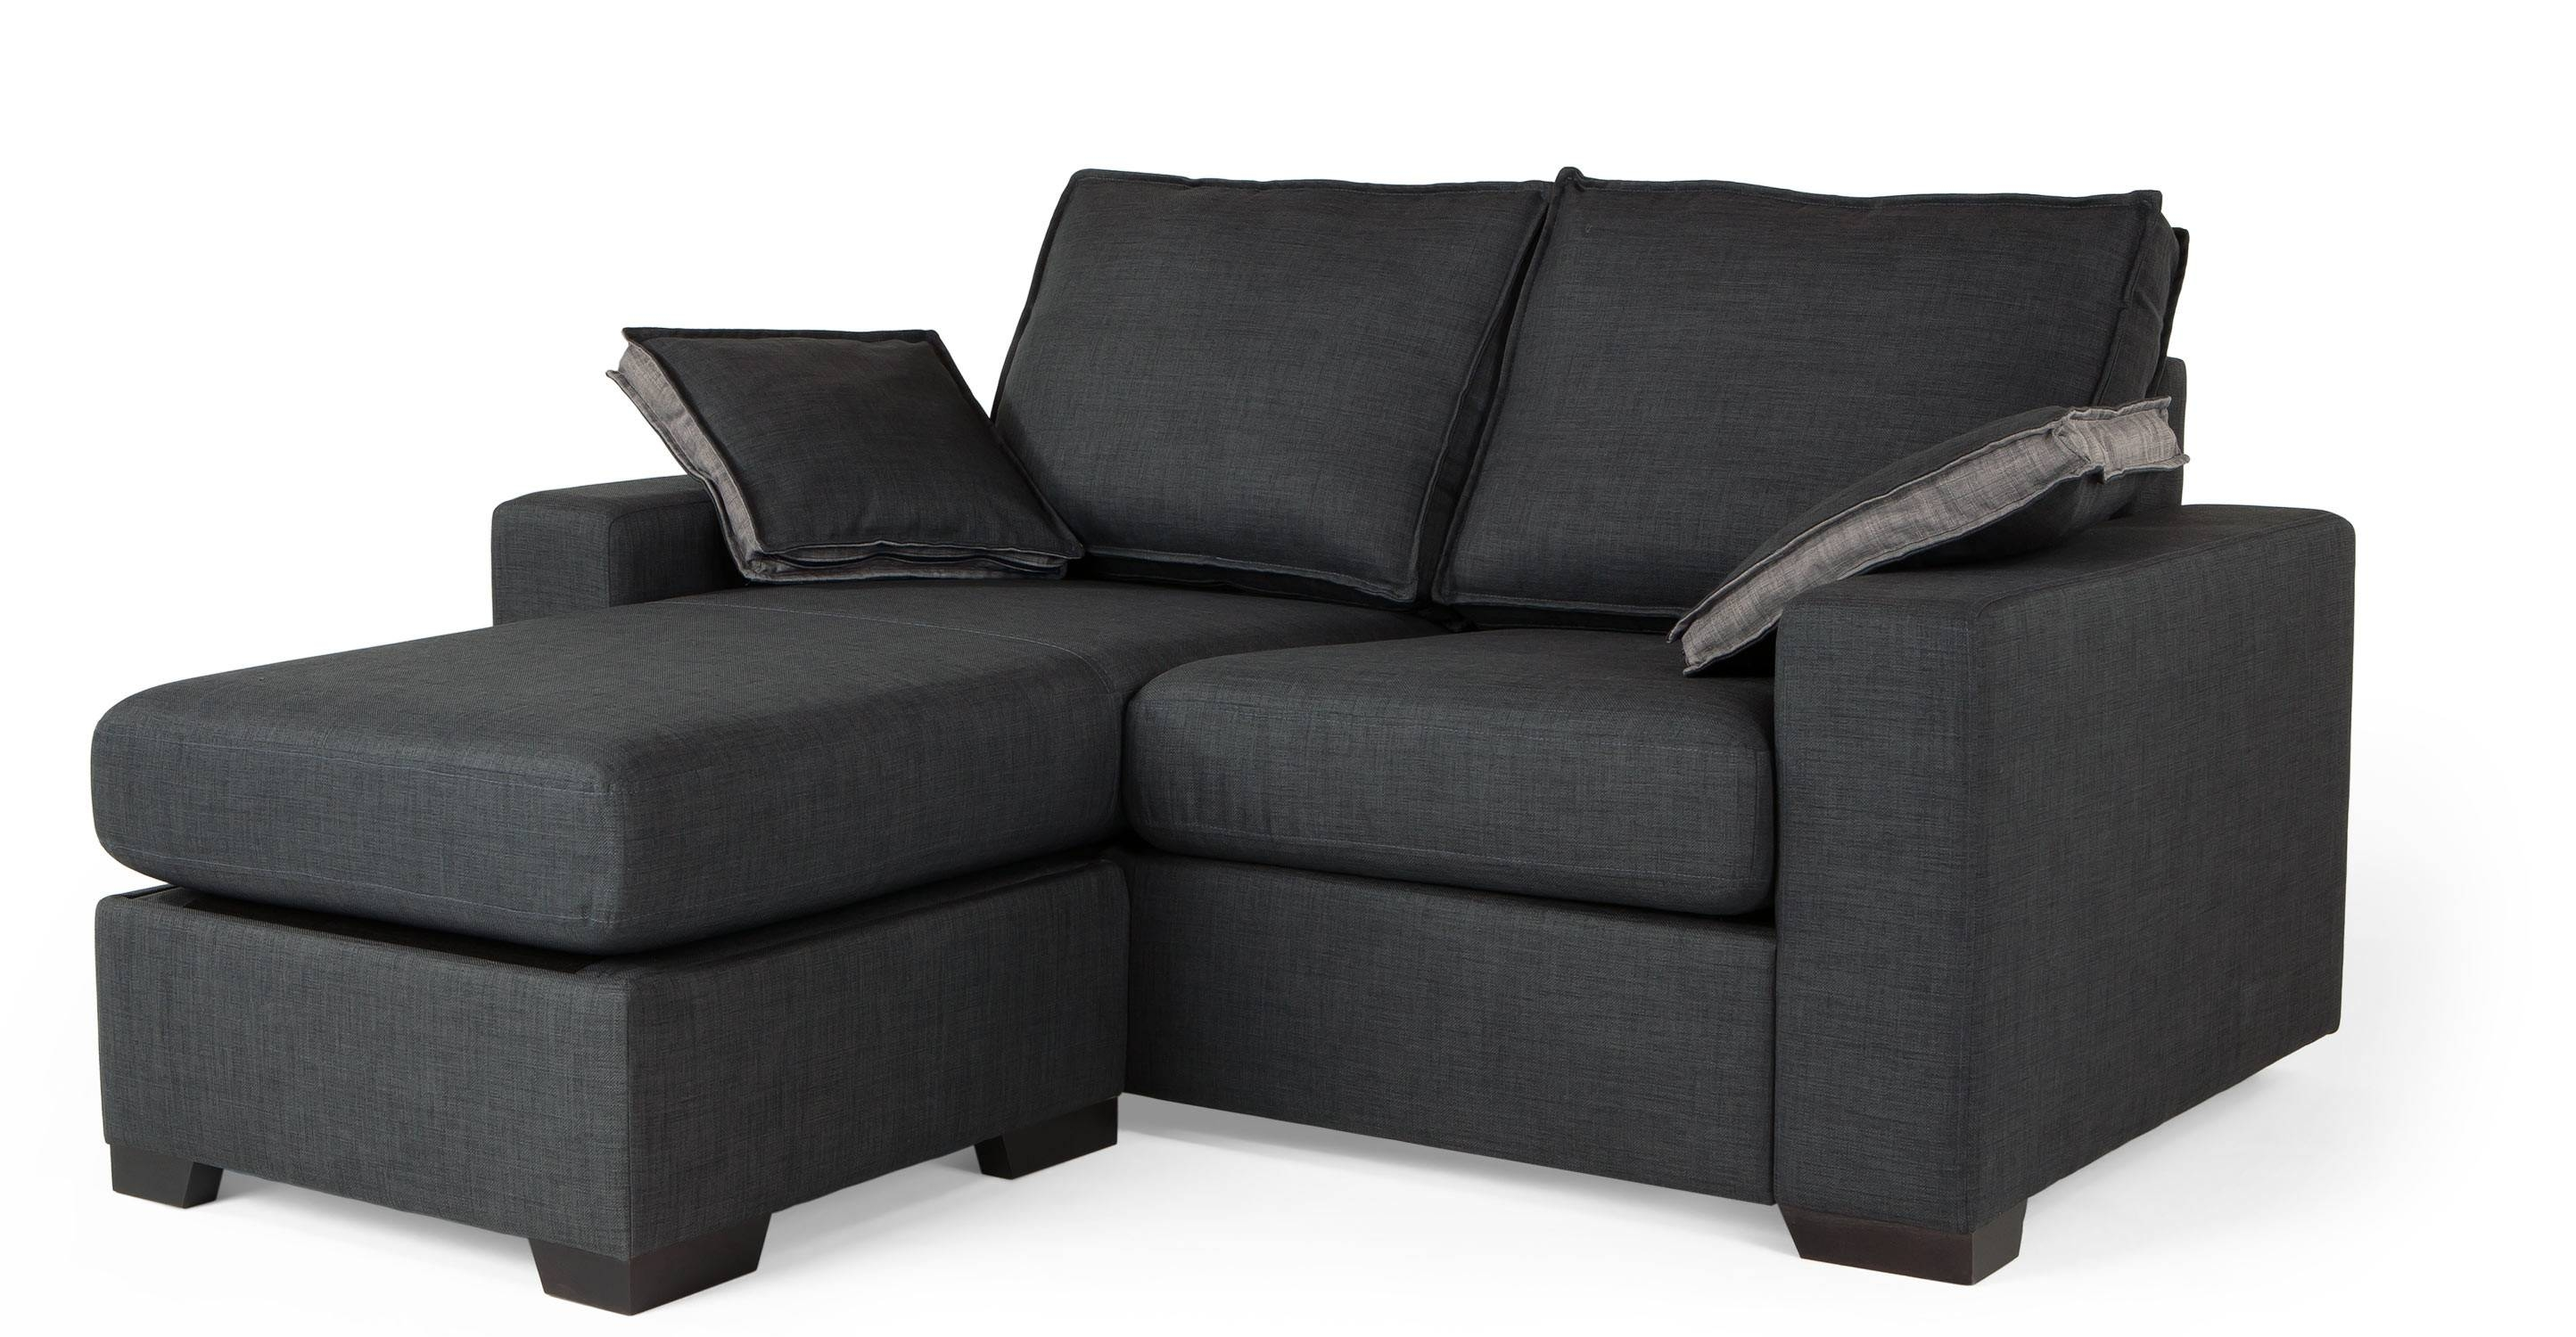 Cool Sofa Beds Offer Comfort And Functionality For Small Inside Cool Sofa Beds (View 11 of 30)